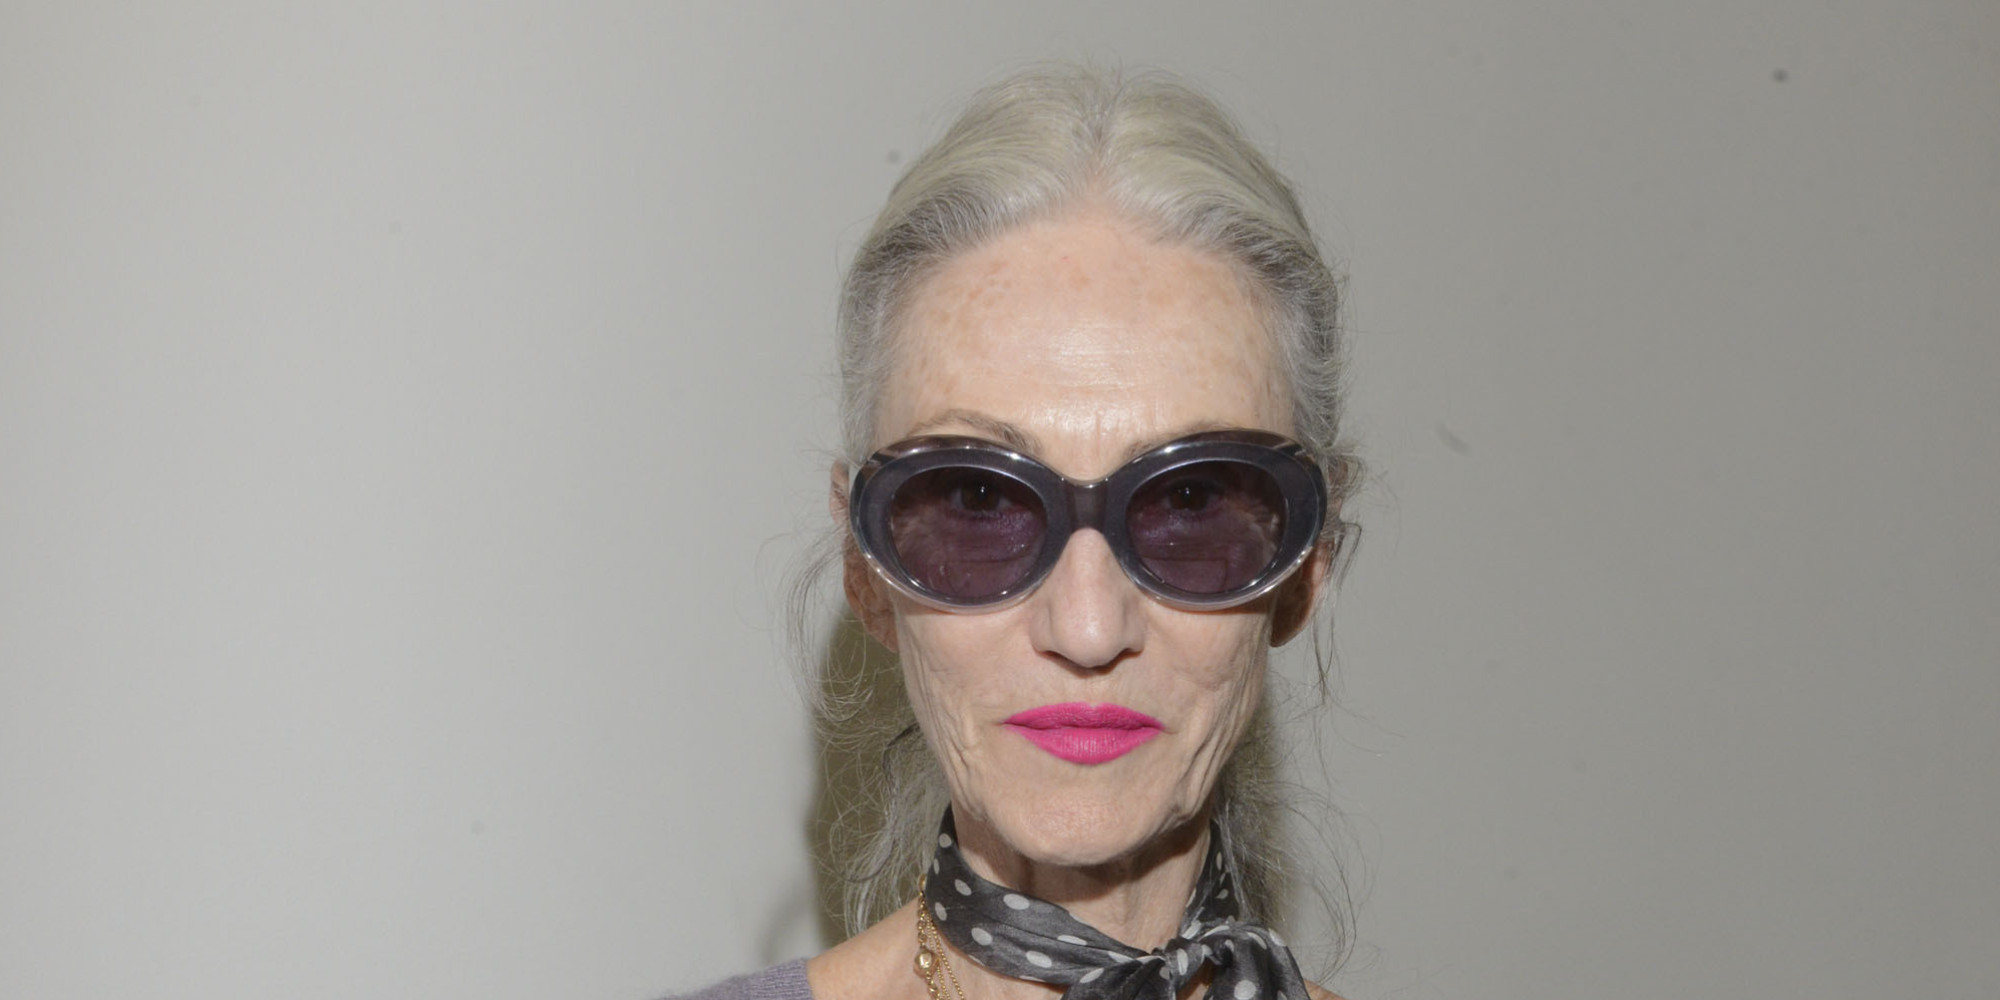 Linda Rodin Aging Vogue n 5716235 on oscar for comedy